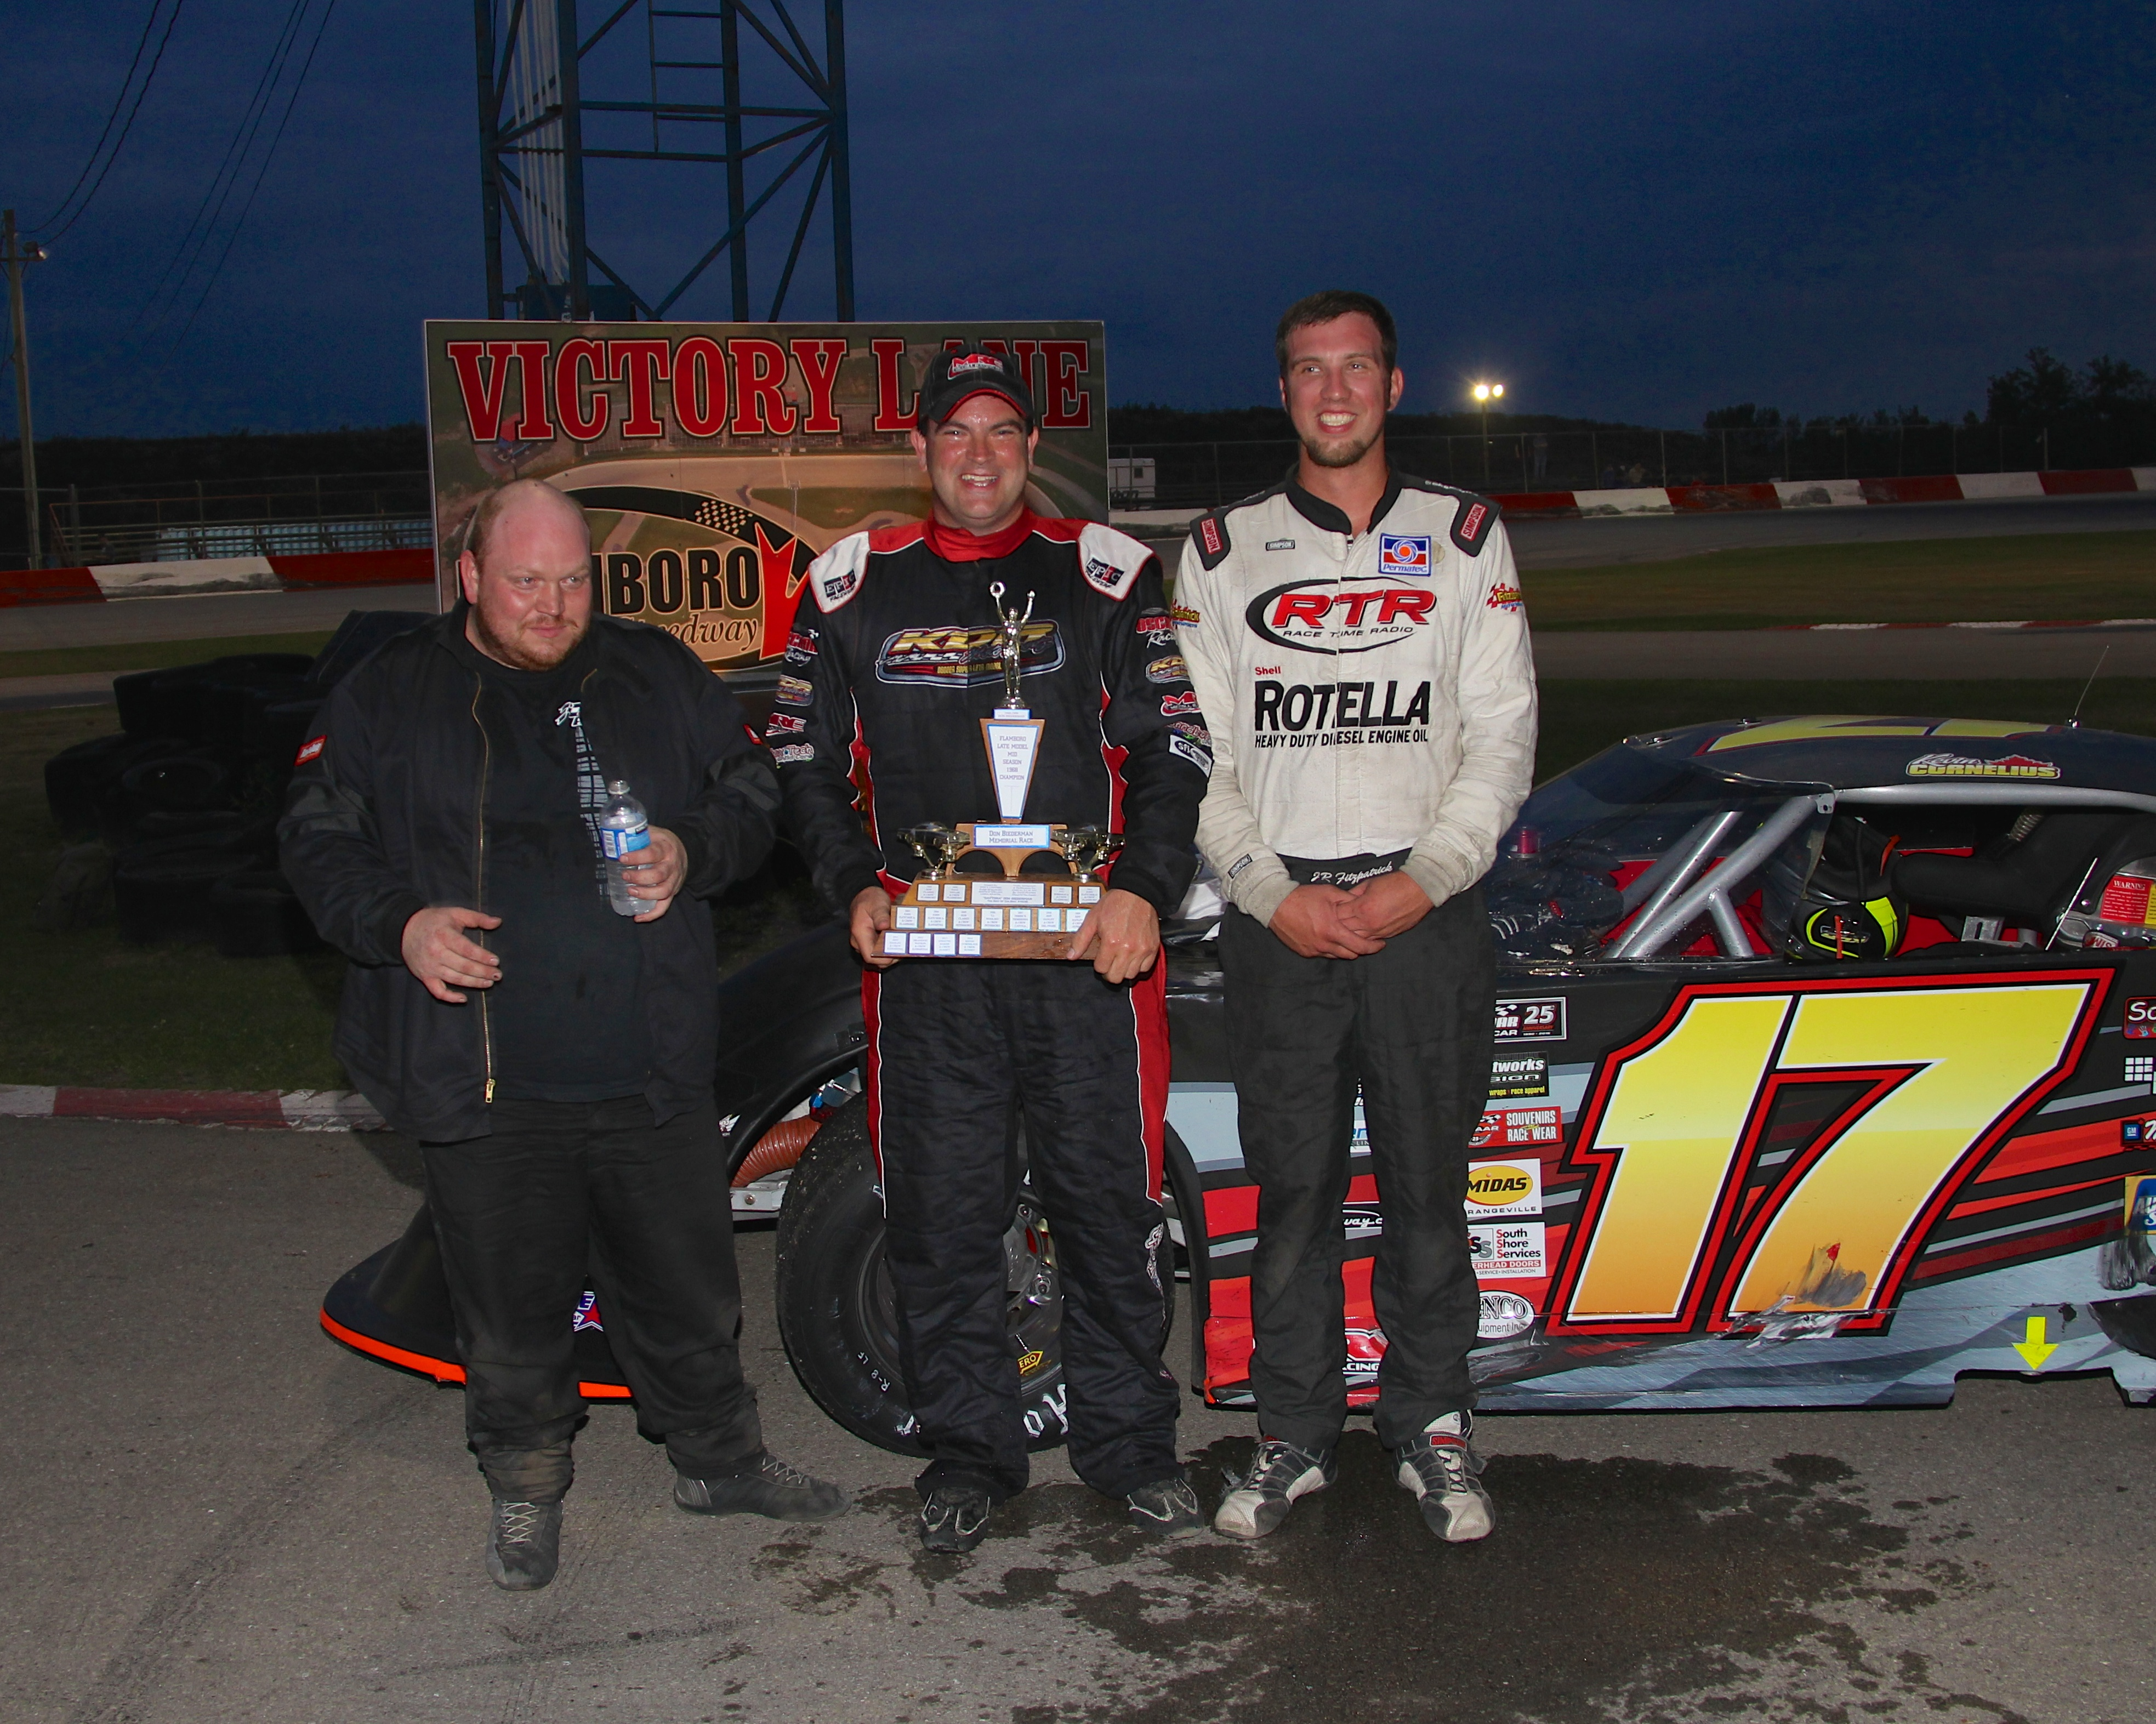 Speed Way Cornelius Harper And Bound Celebrate Victory At Flamboro Speedway